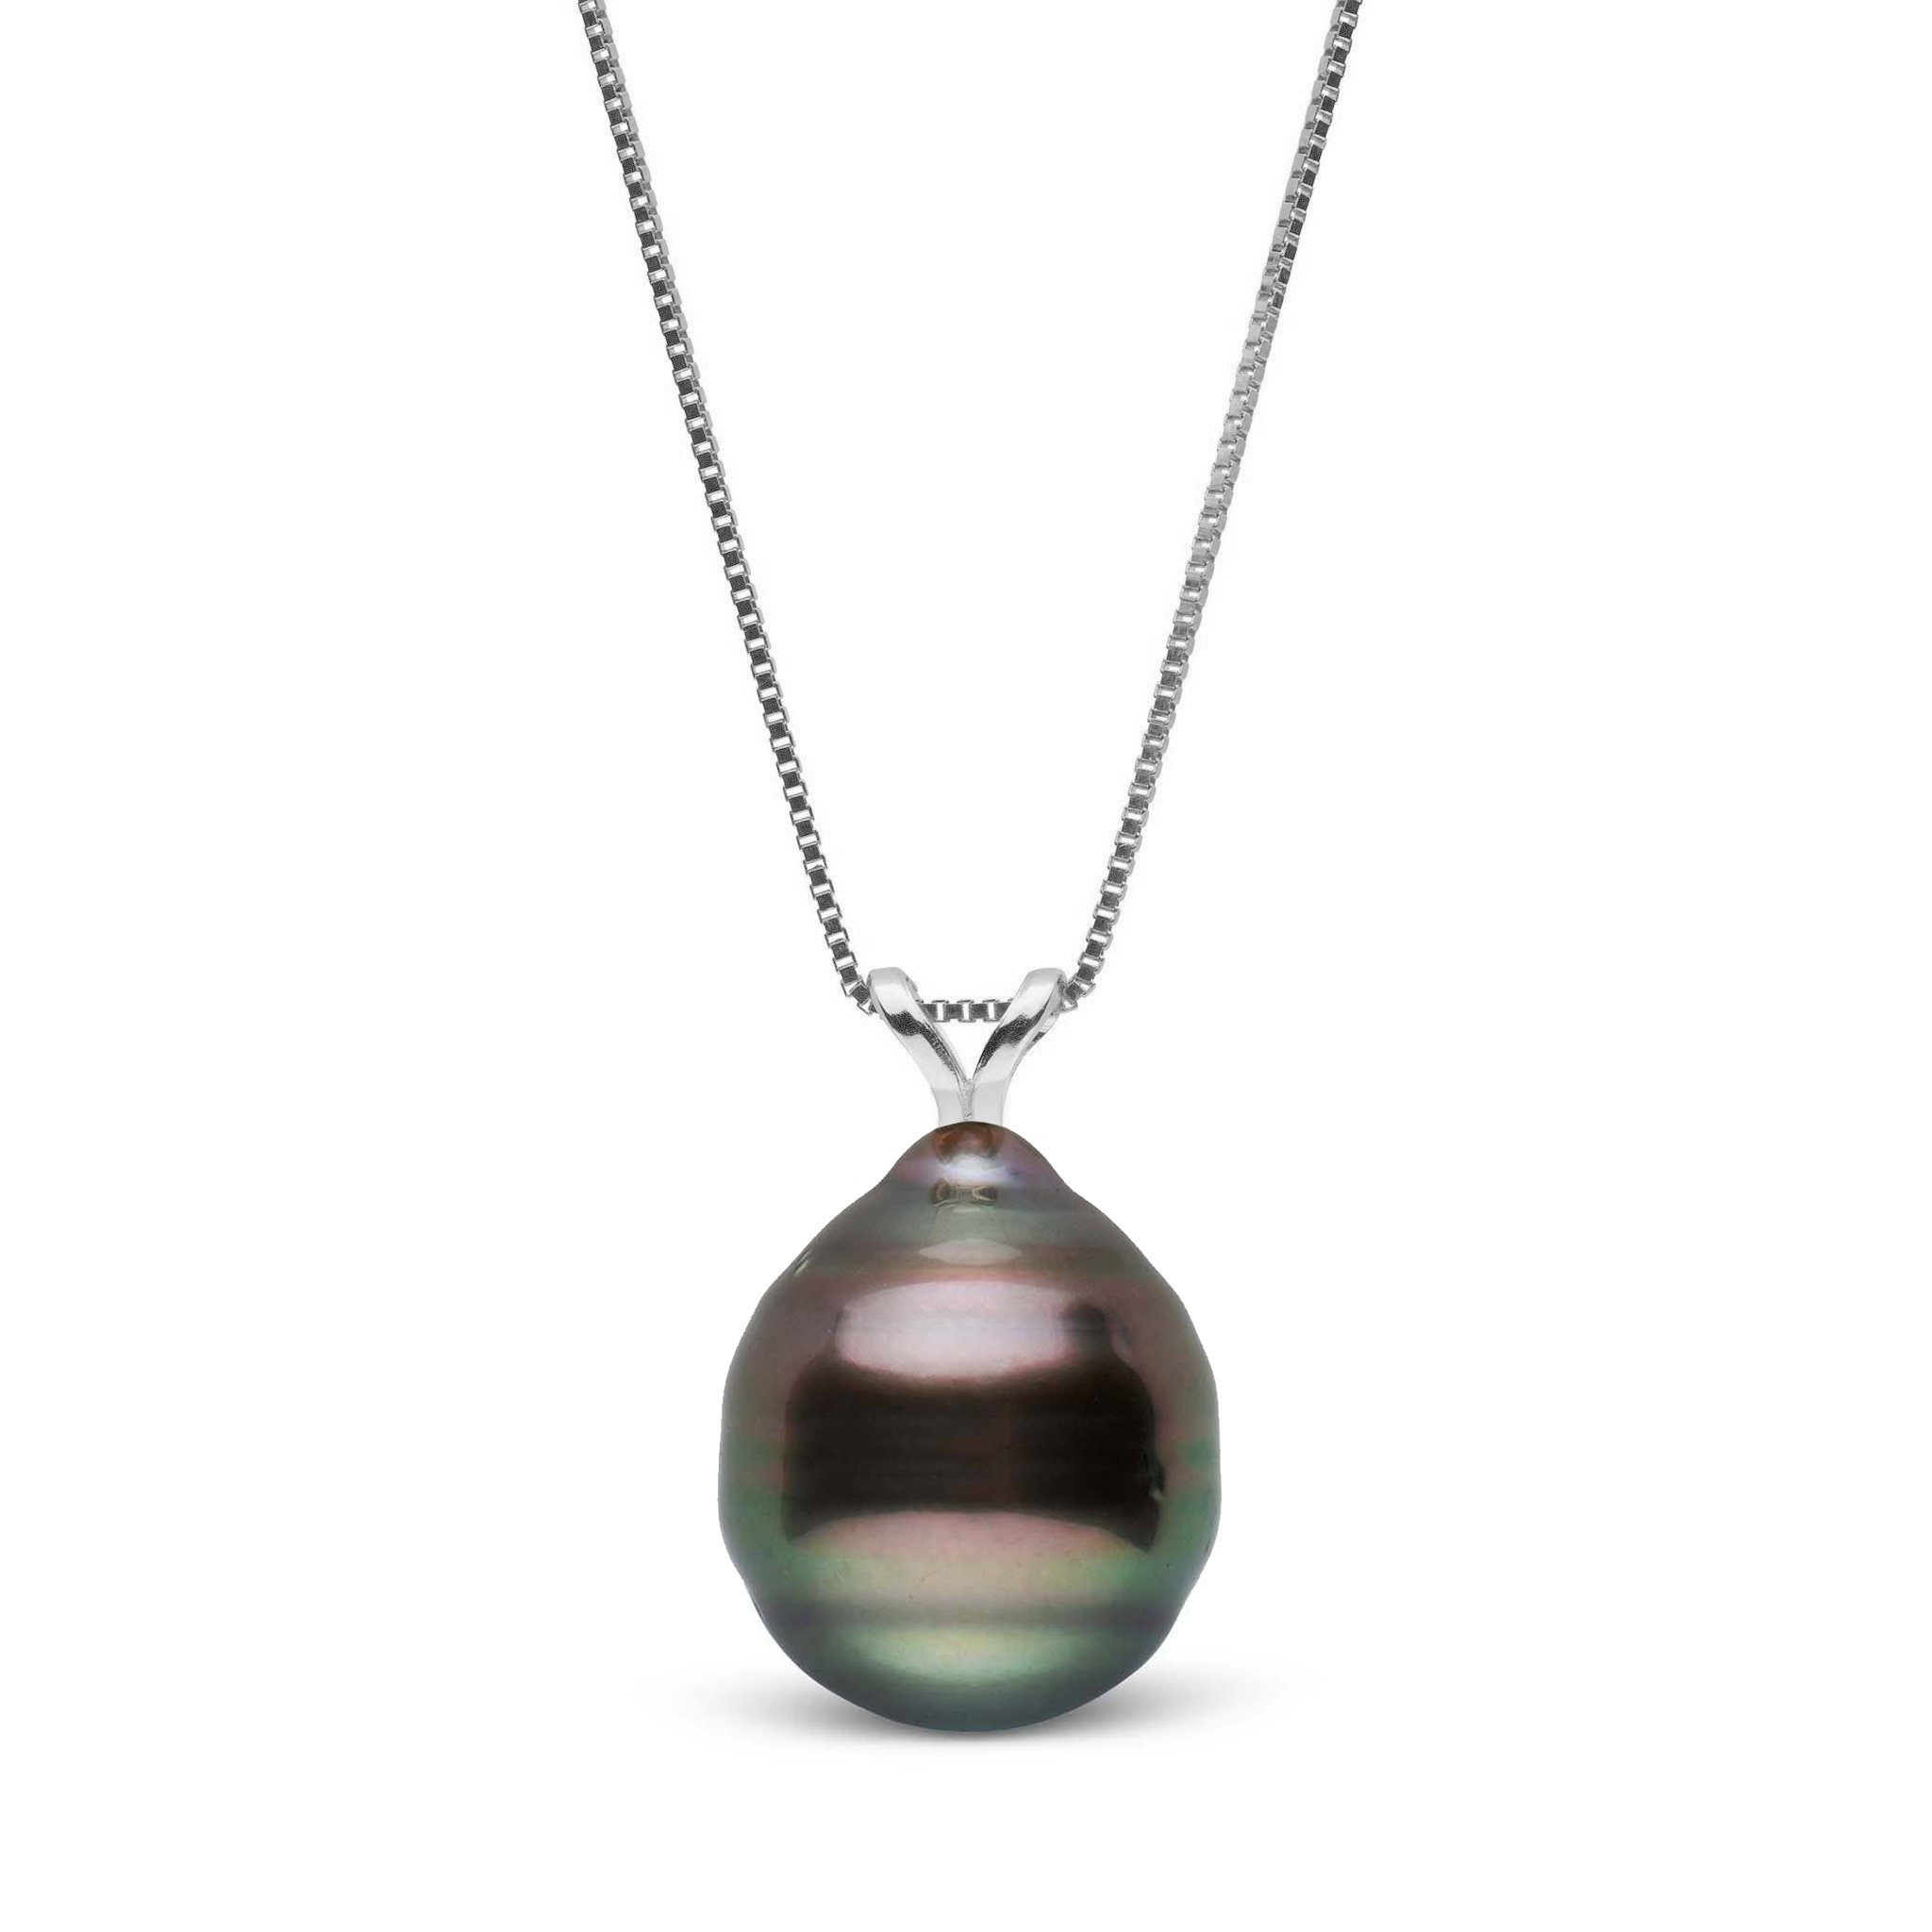 Unity Collection 9.0-10.0 mm Baroque Tahitian Pearl Pendant